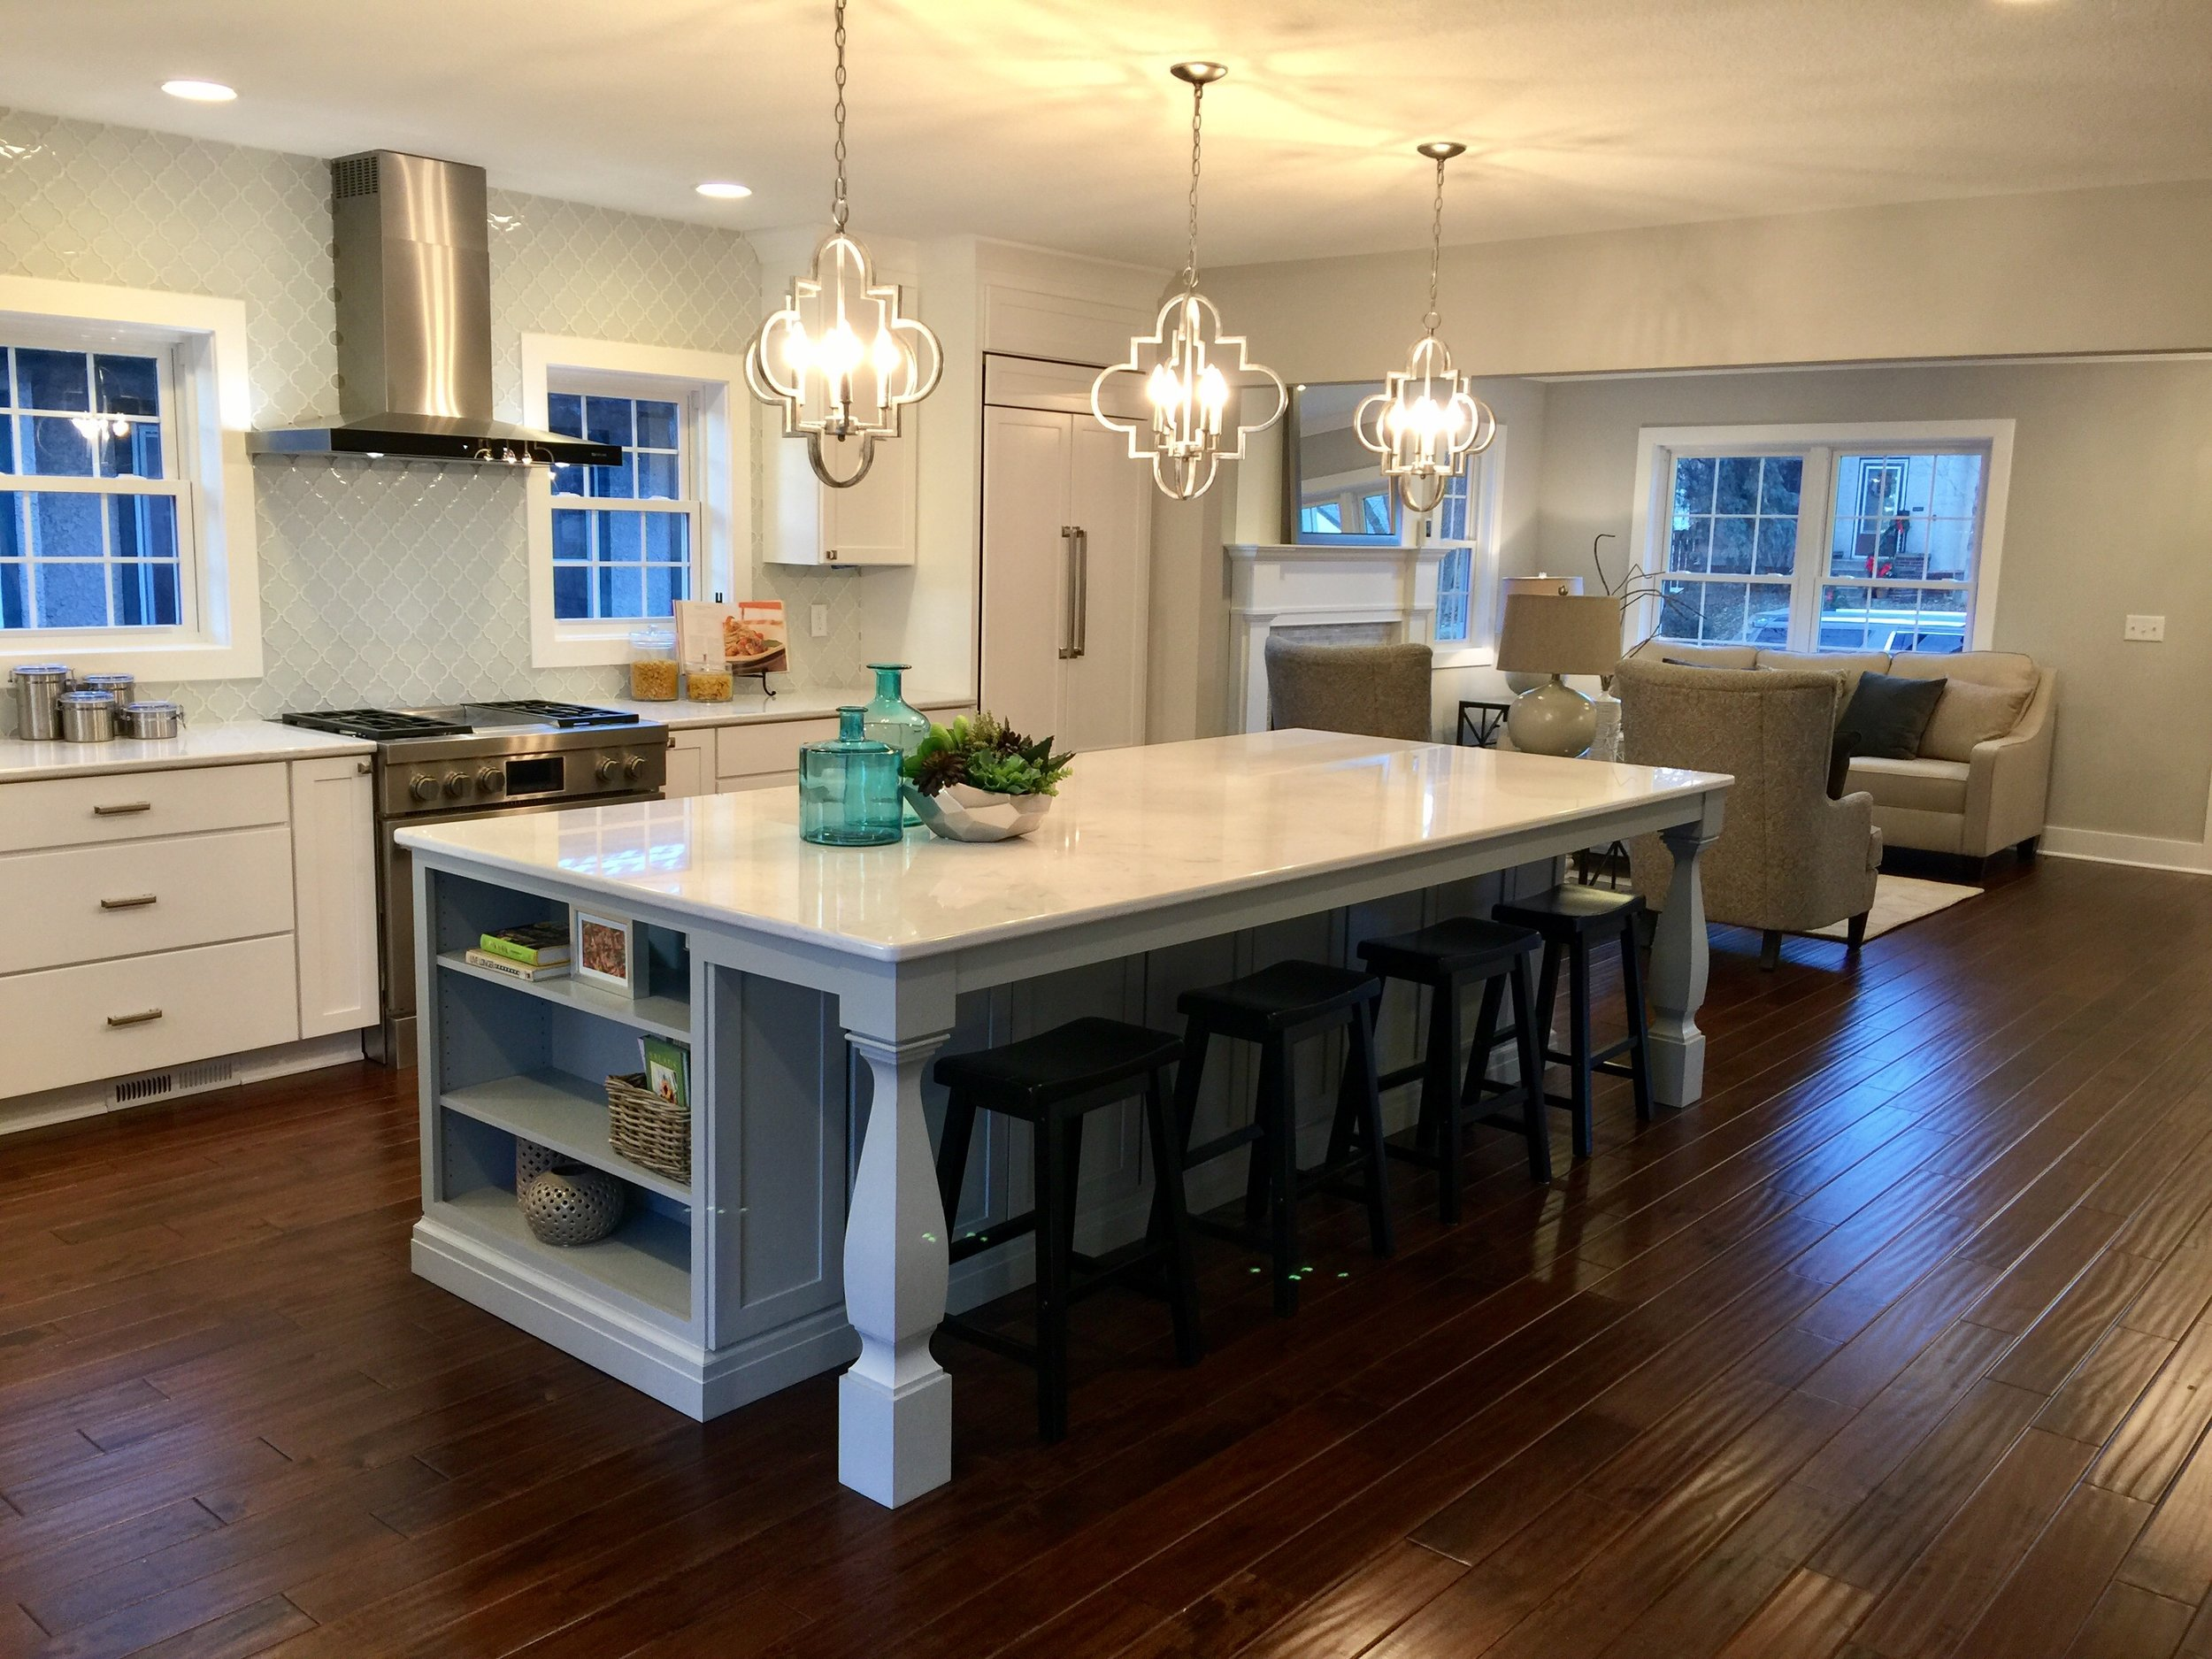 How To Choose The Best Pendant Lighting For Over Your Kitchen Island Trubuild Construction